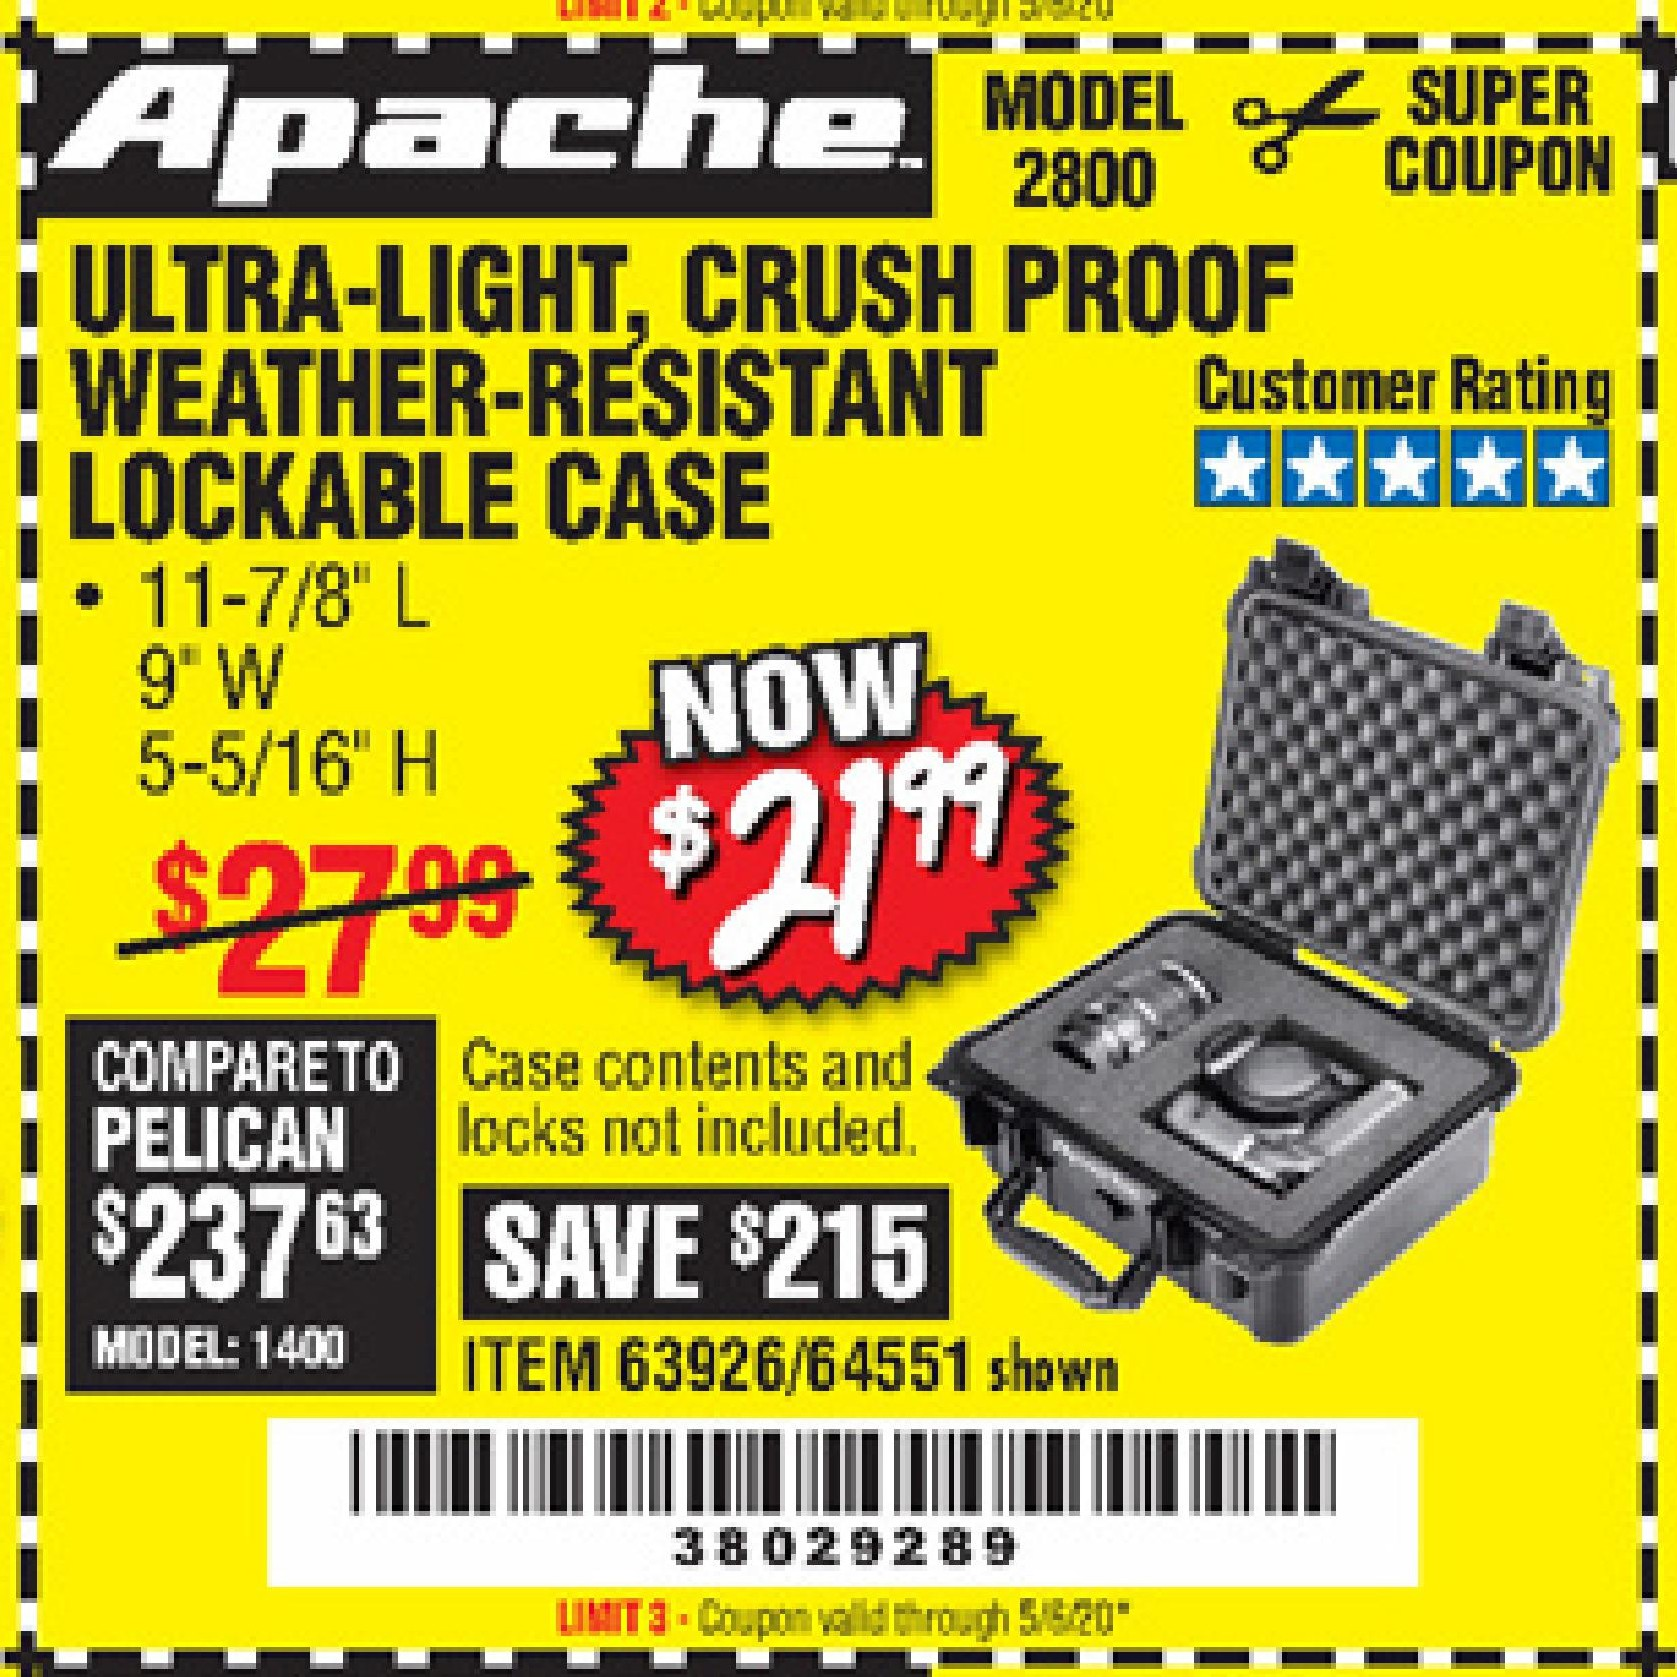 Harbor Freight APACHE 2800 CASE coupon